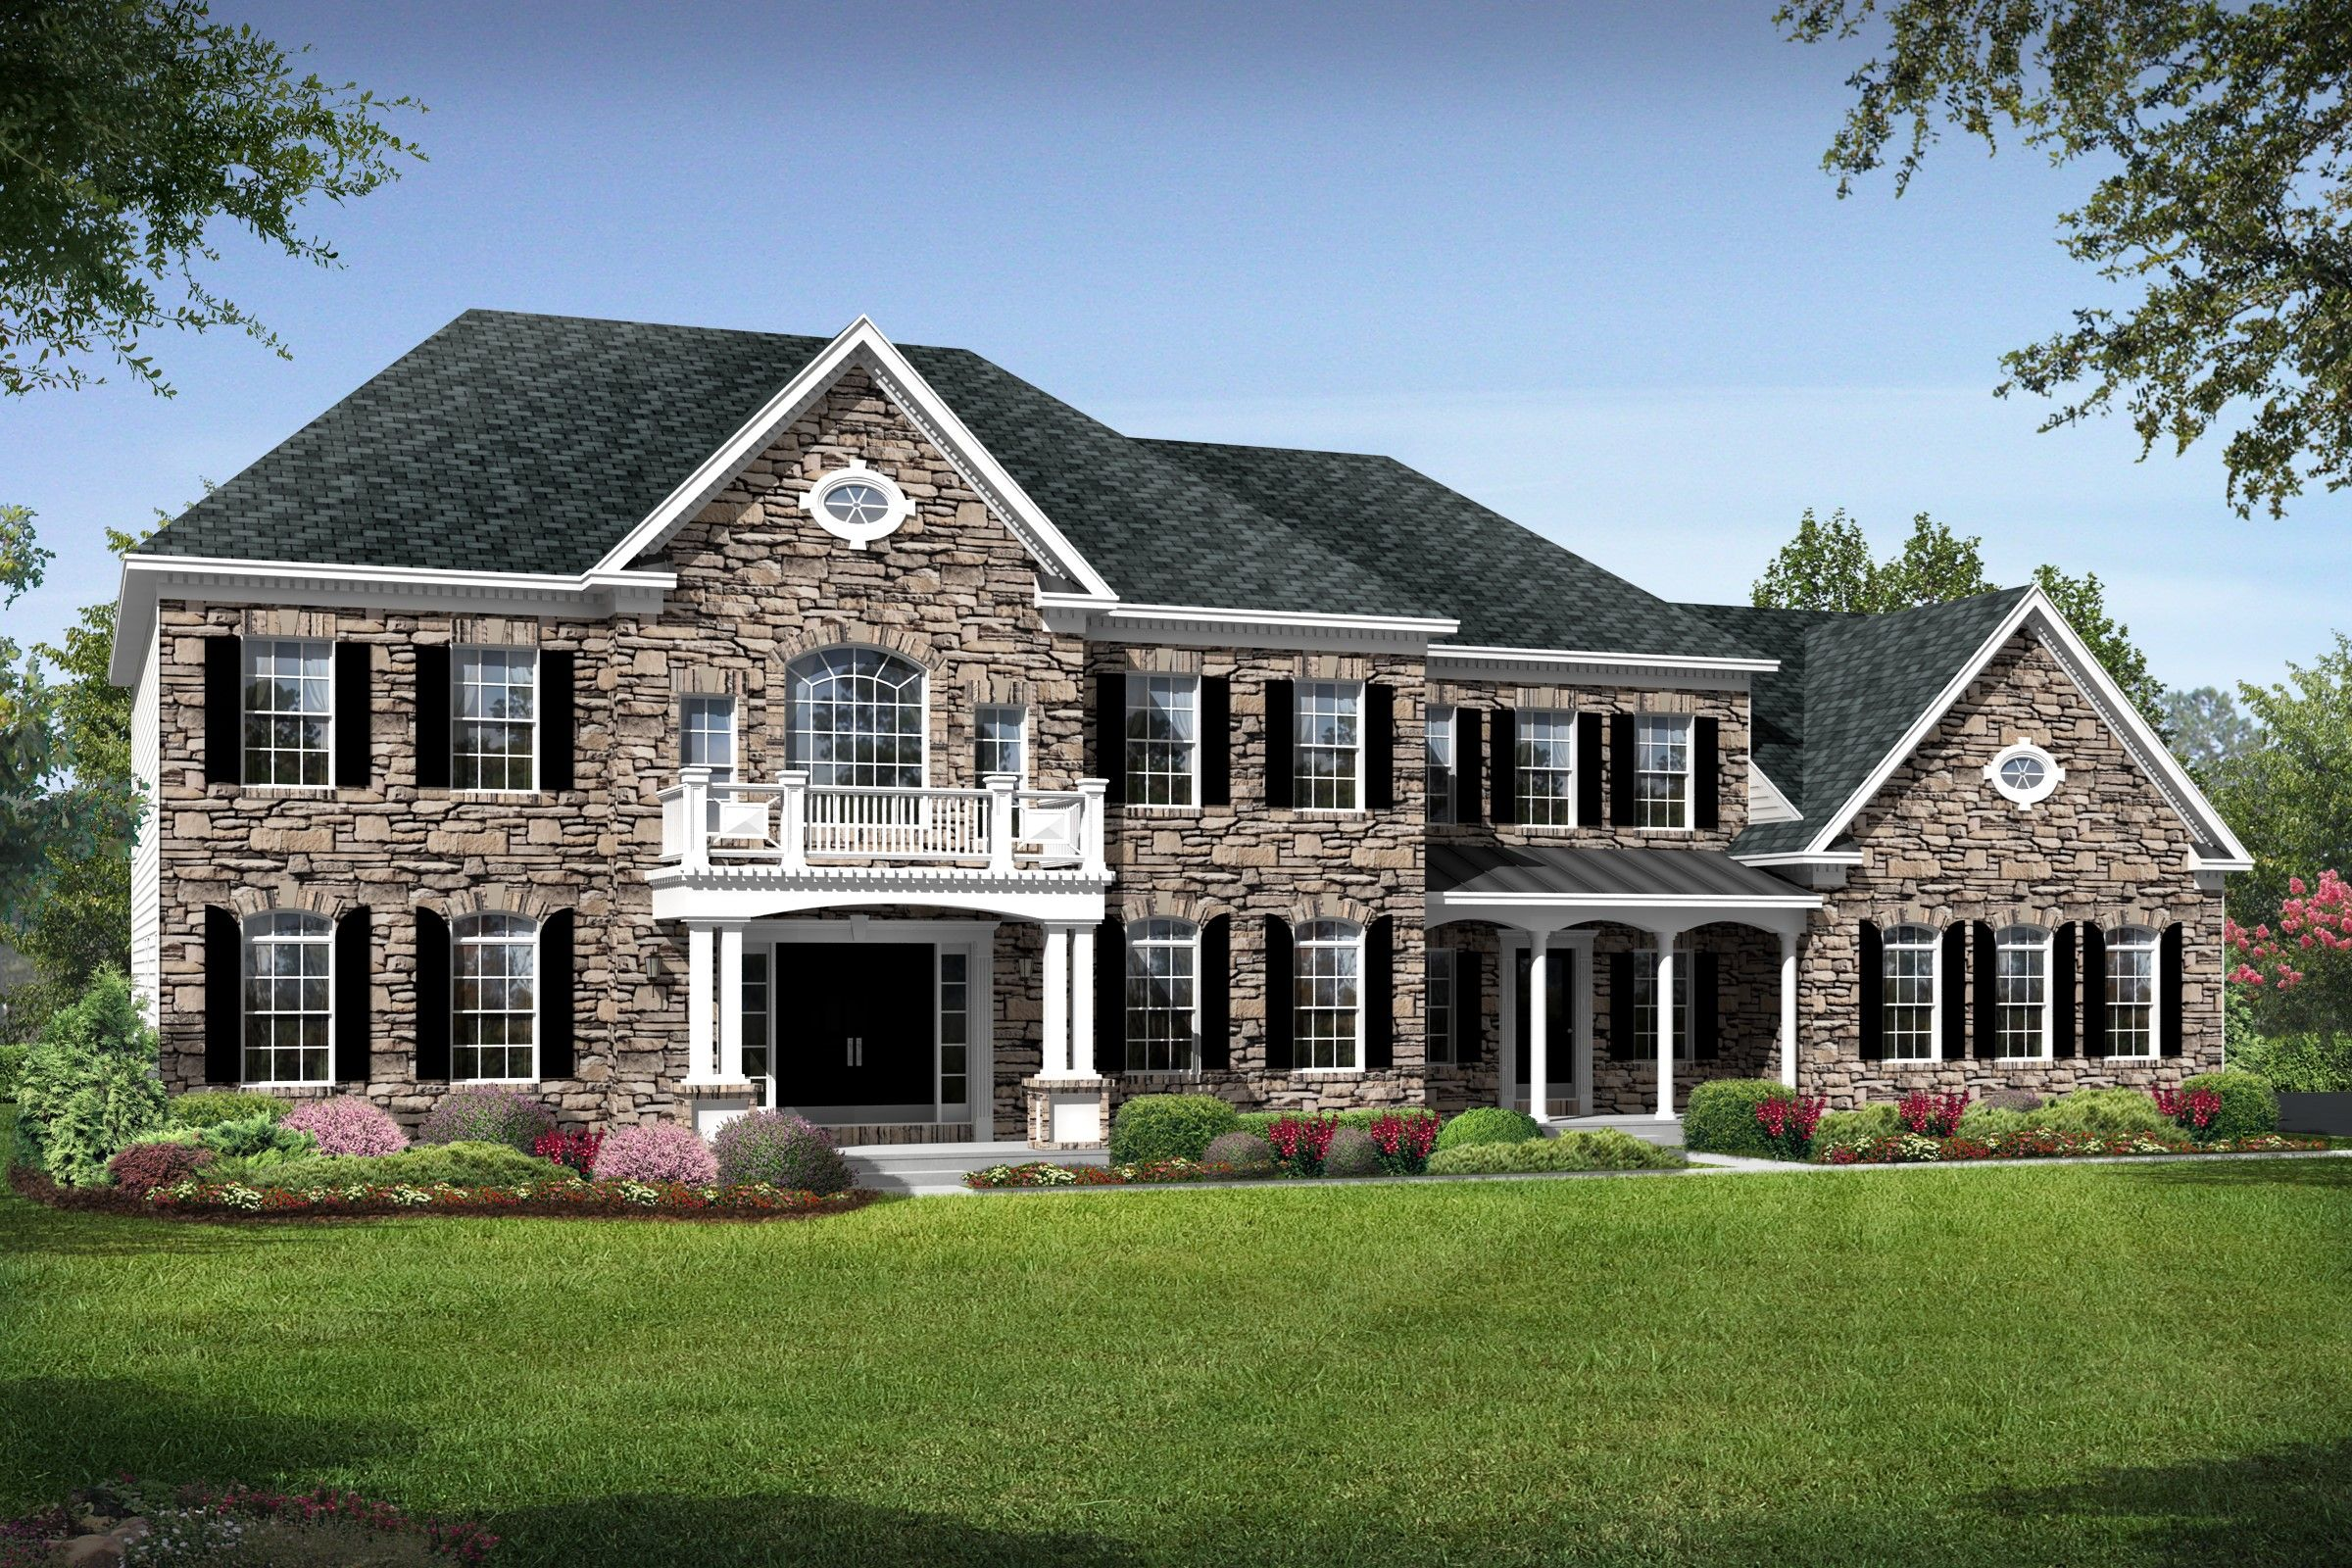 Single Family for Sale at Hunters Pond - Tara 16105 Hunters Pond Trail Centreville Centreville, Virginia 20120 United States